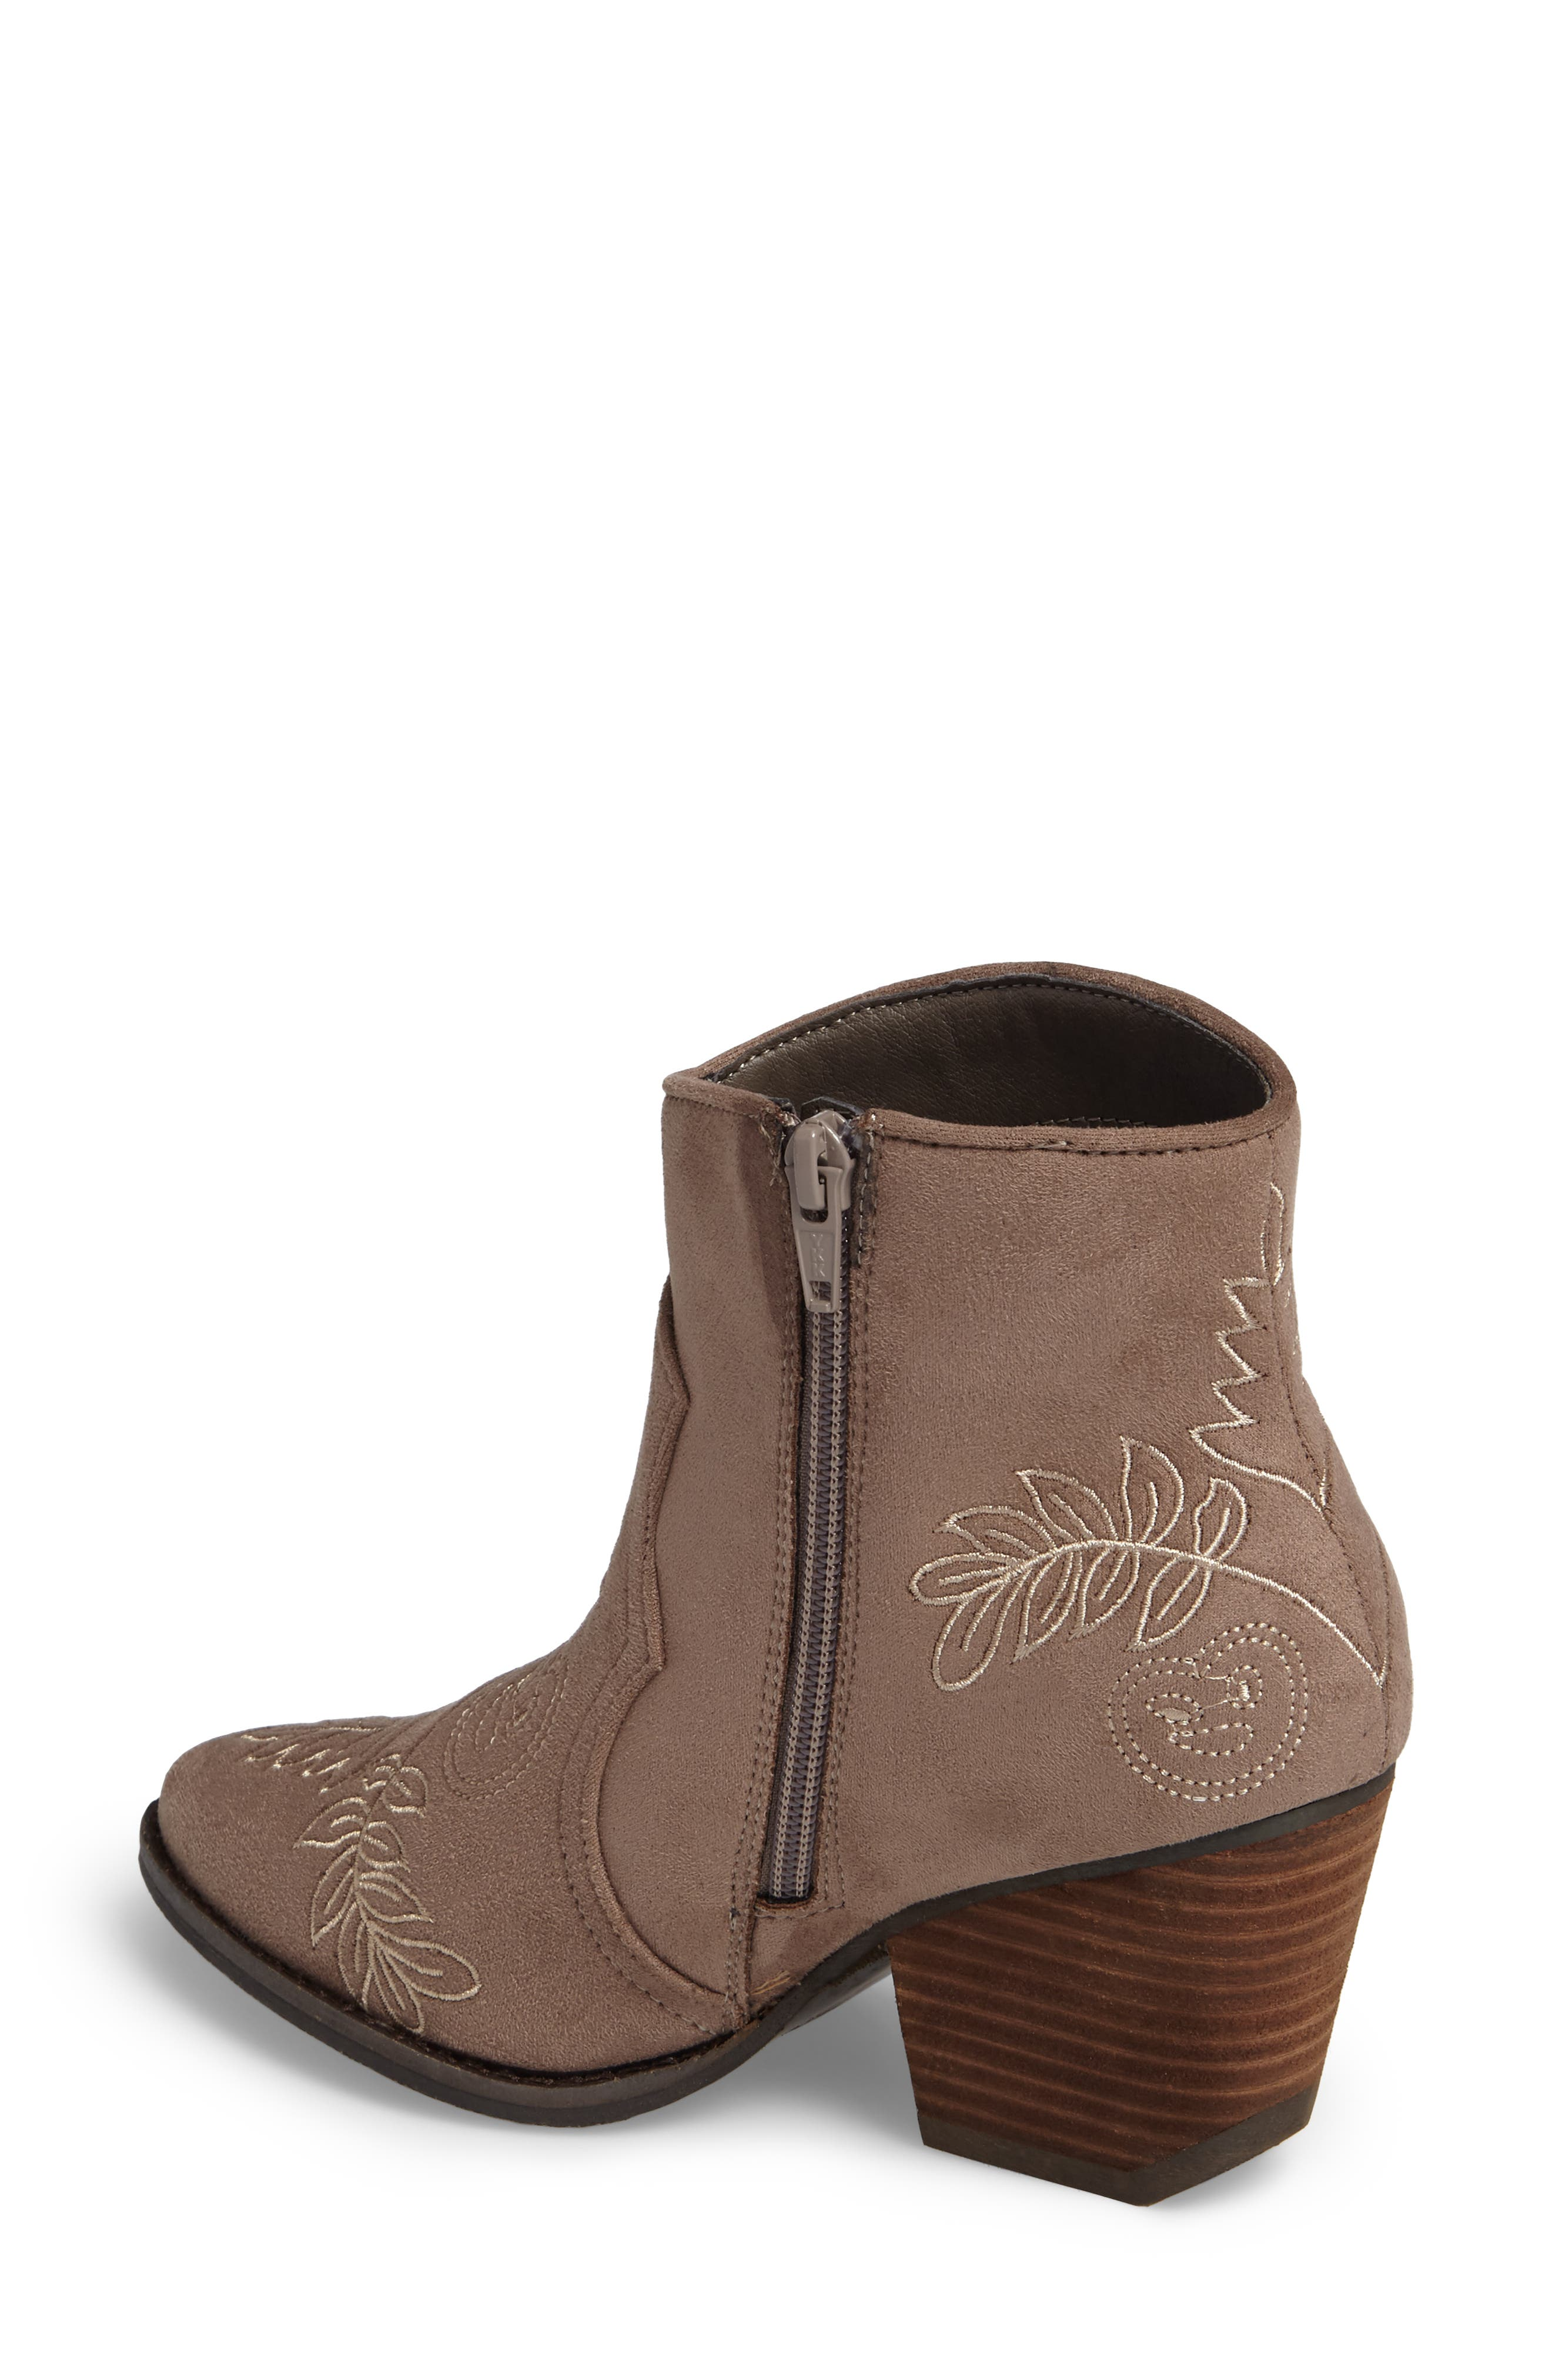 Axis Embroidered Bootie,                             Alternate thumbnail 4, color,